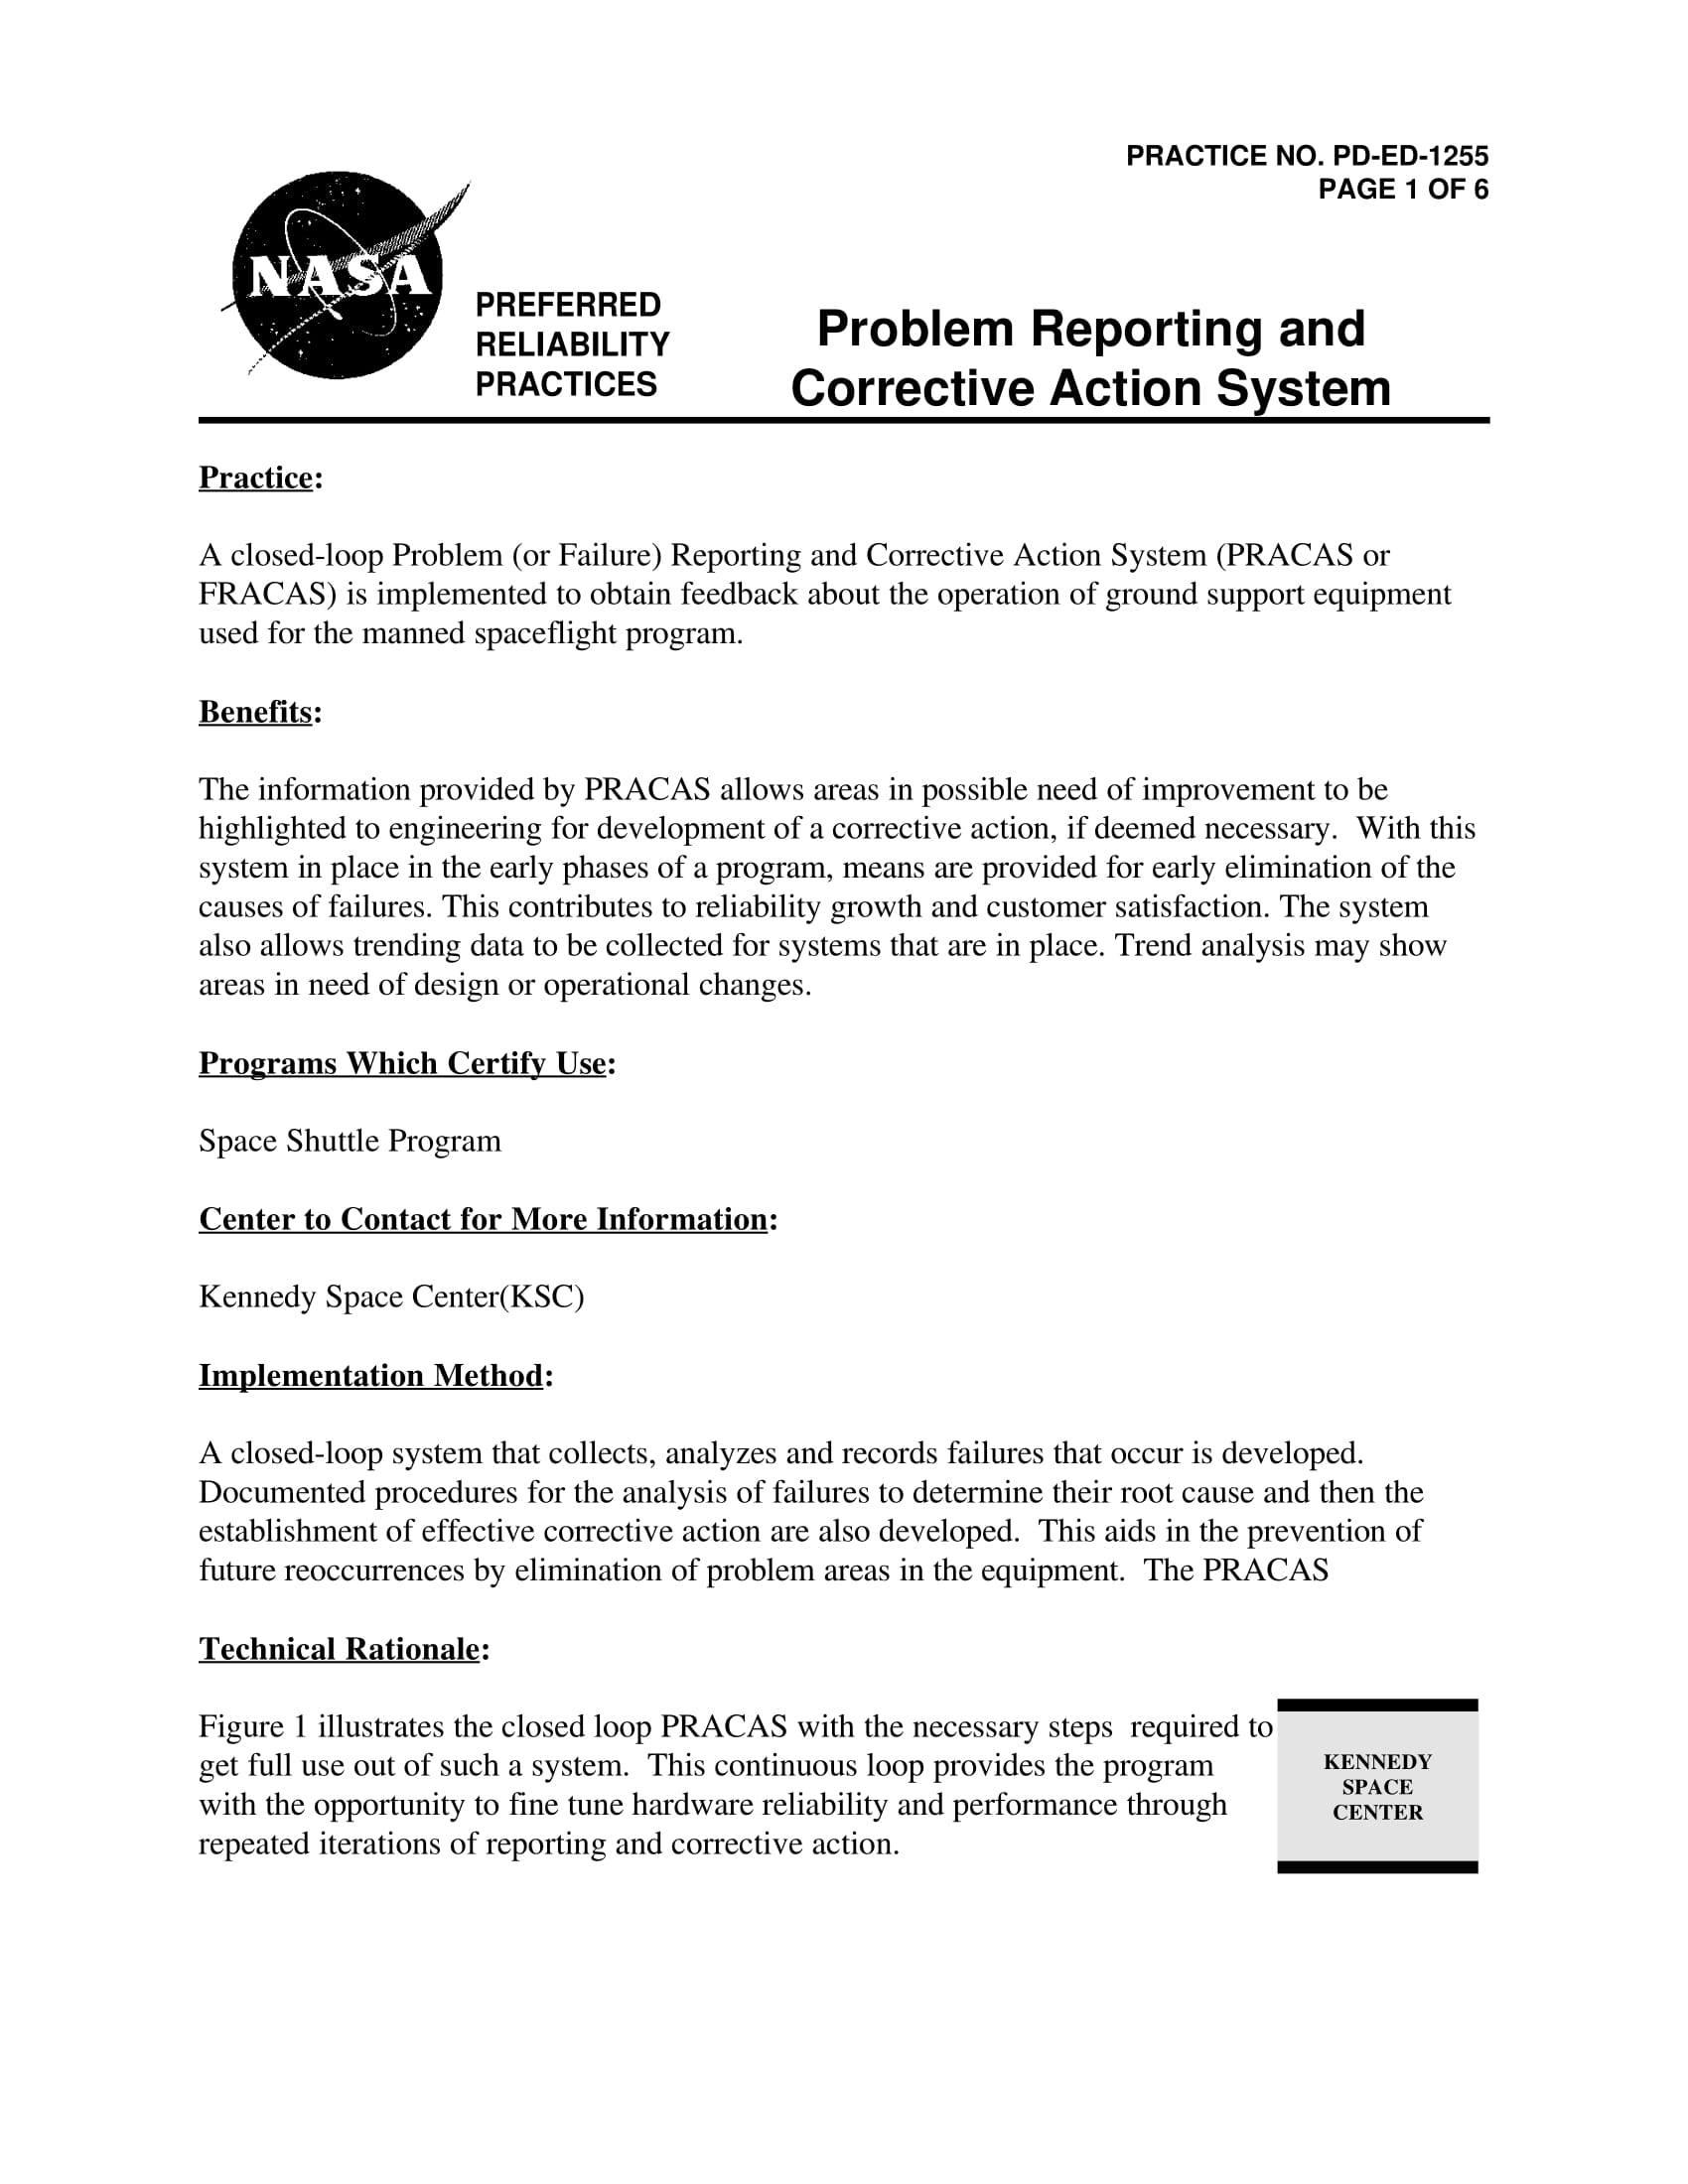 problem reporting and corrective action system example 1